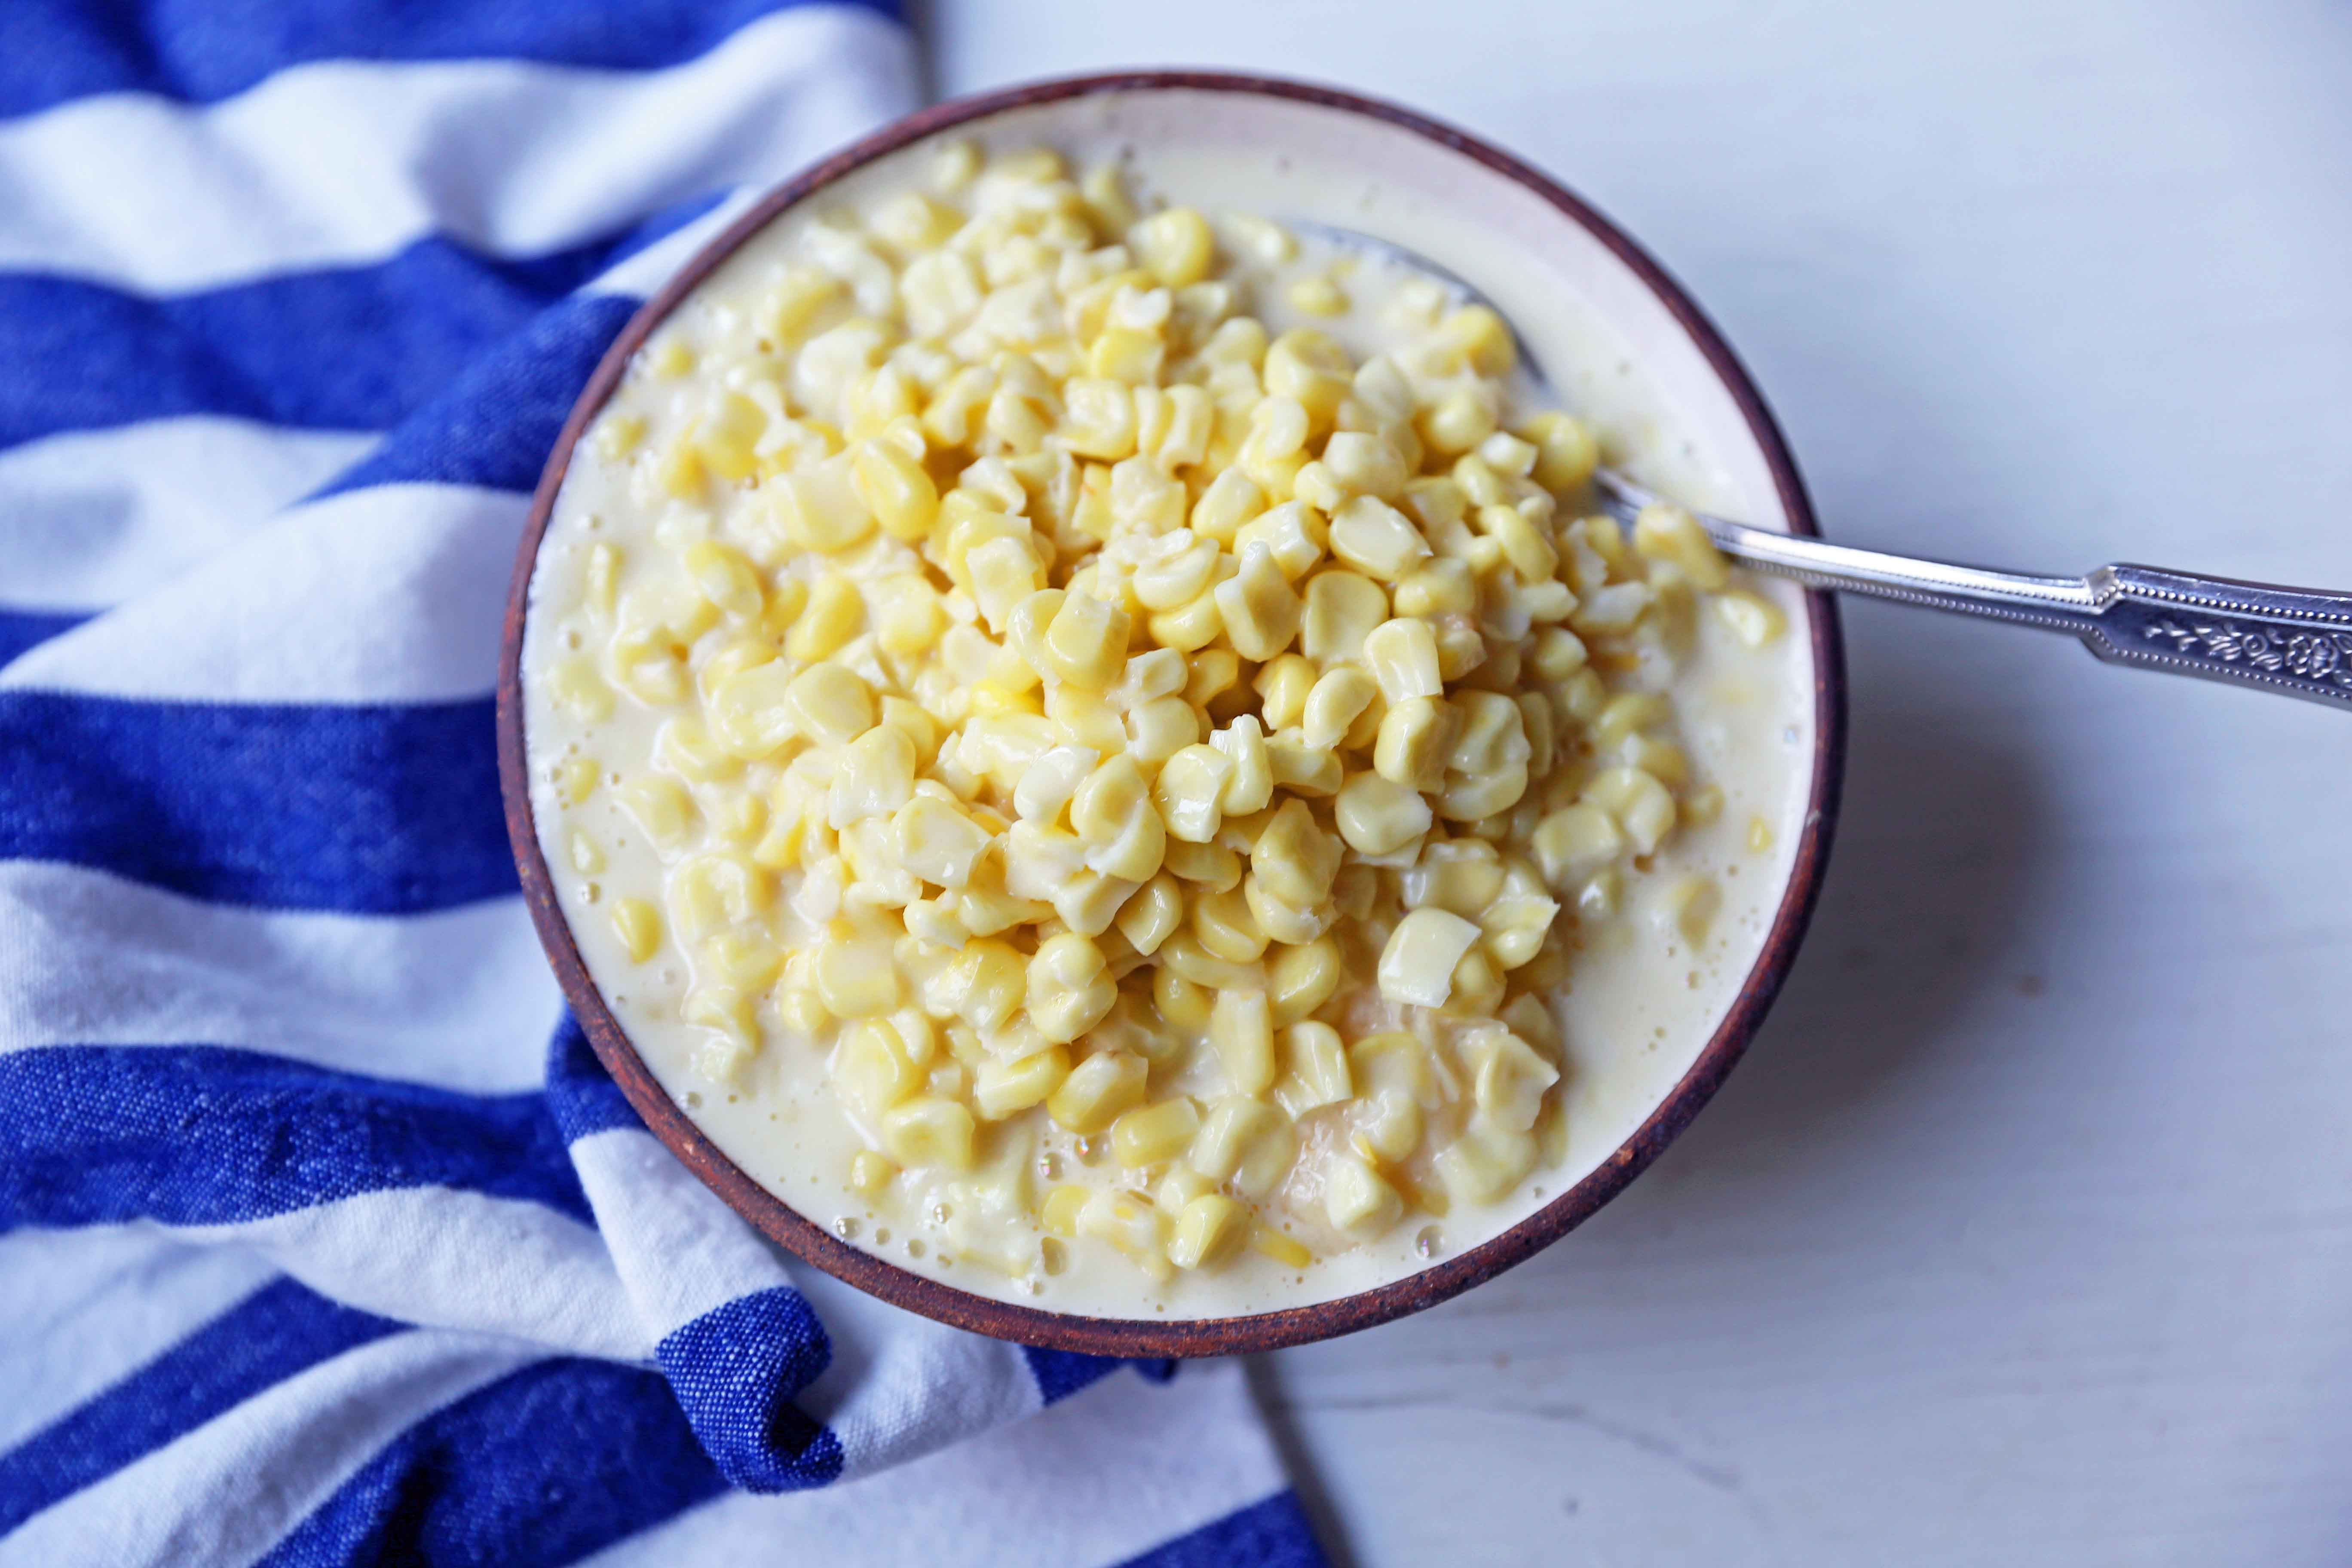 Creamed Corn Recipe. The best creamed corn using heavy cream, parmesan cheese, butter, and corn. The perfect creamed corn recipe! www.modernhoney.com #creamedcorn #creamedcornrecipe